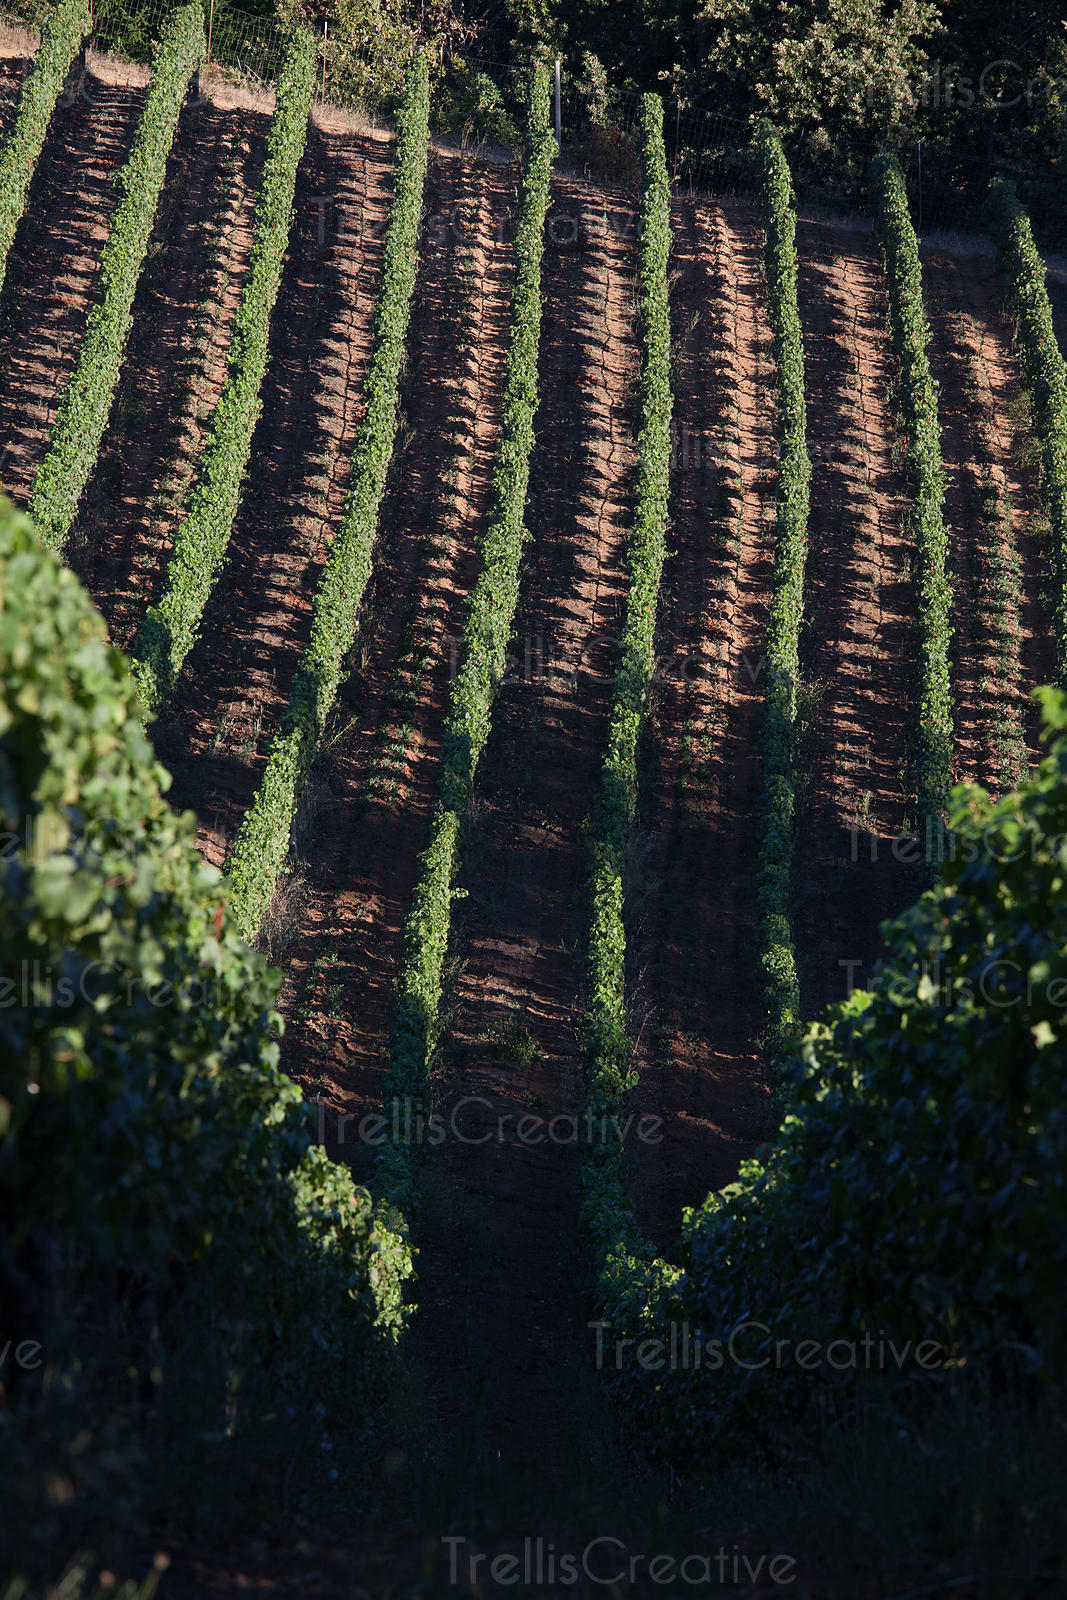 Rows of green lush vines form a magical pattern on the hillside vineyards